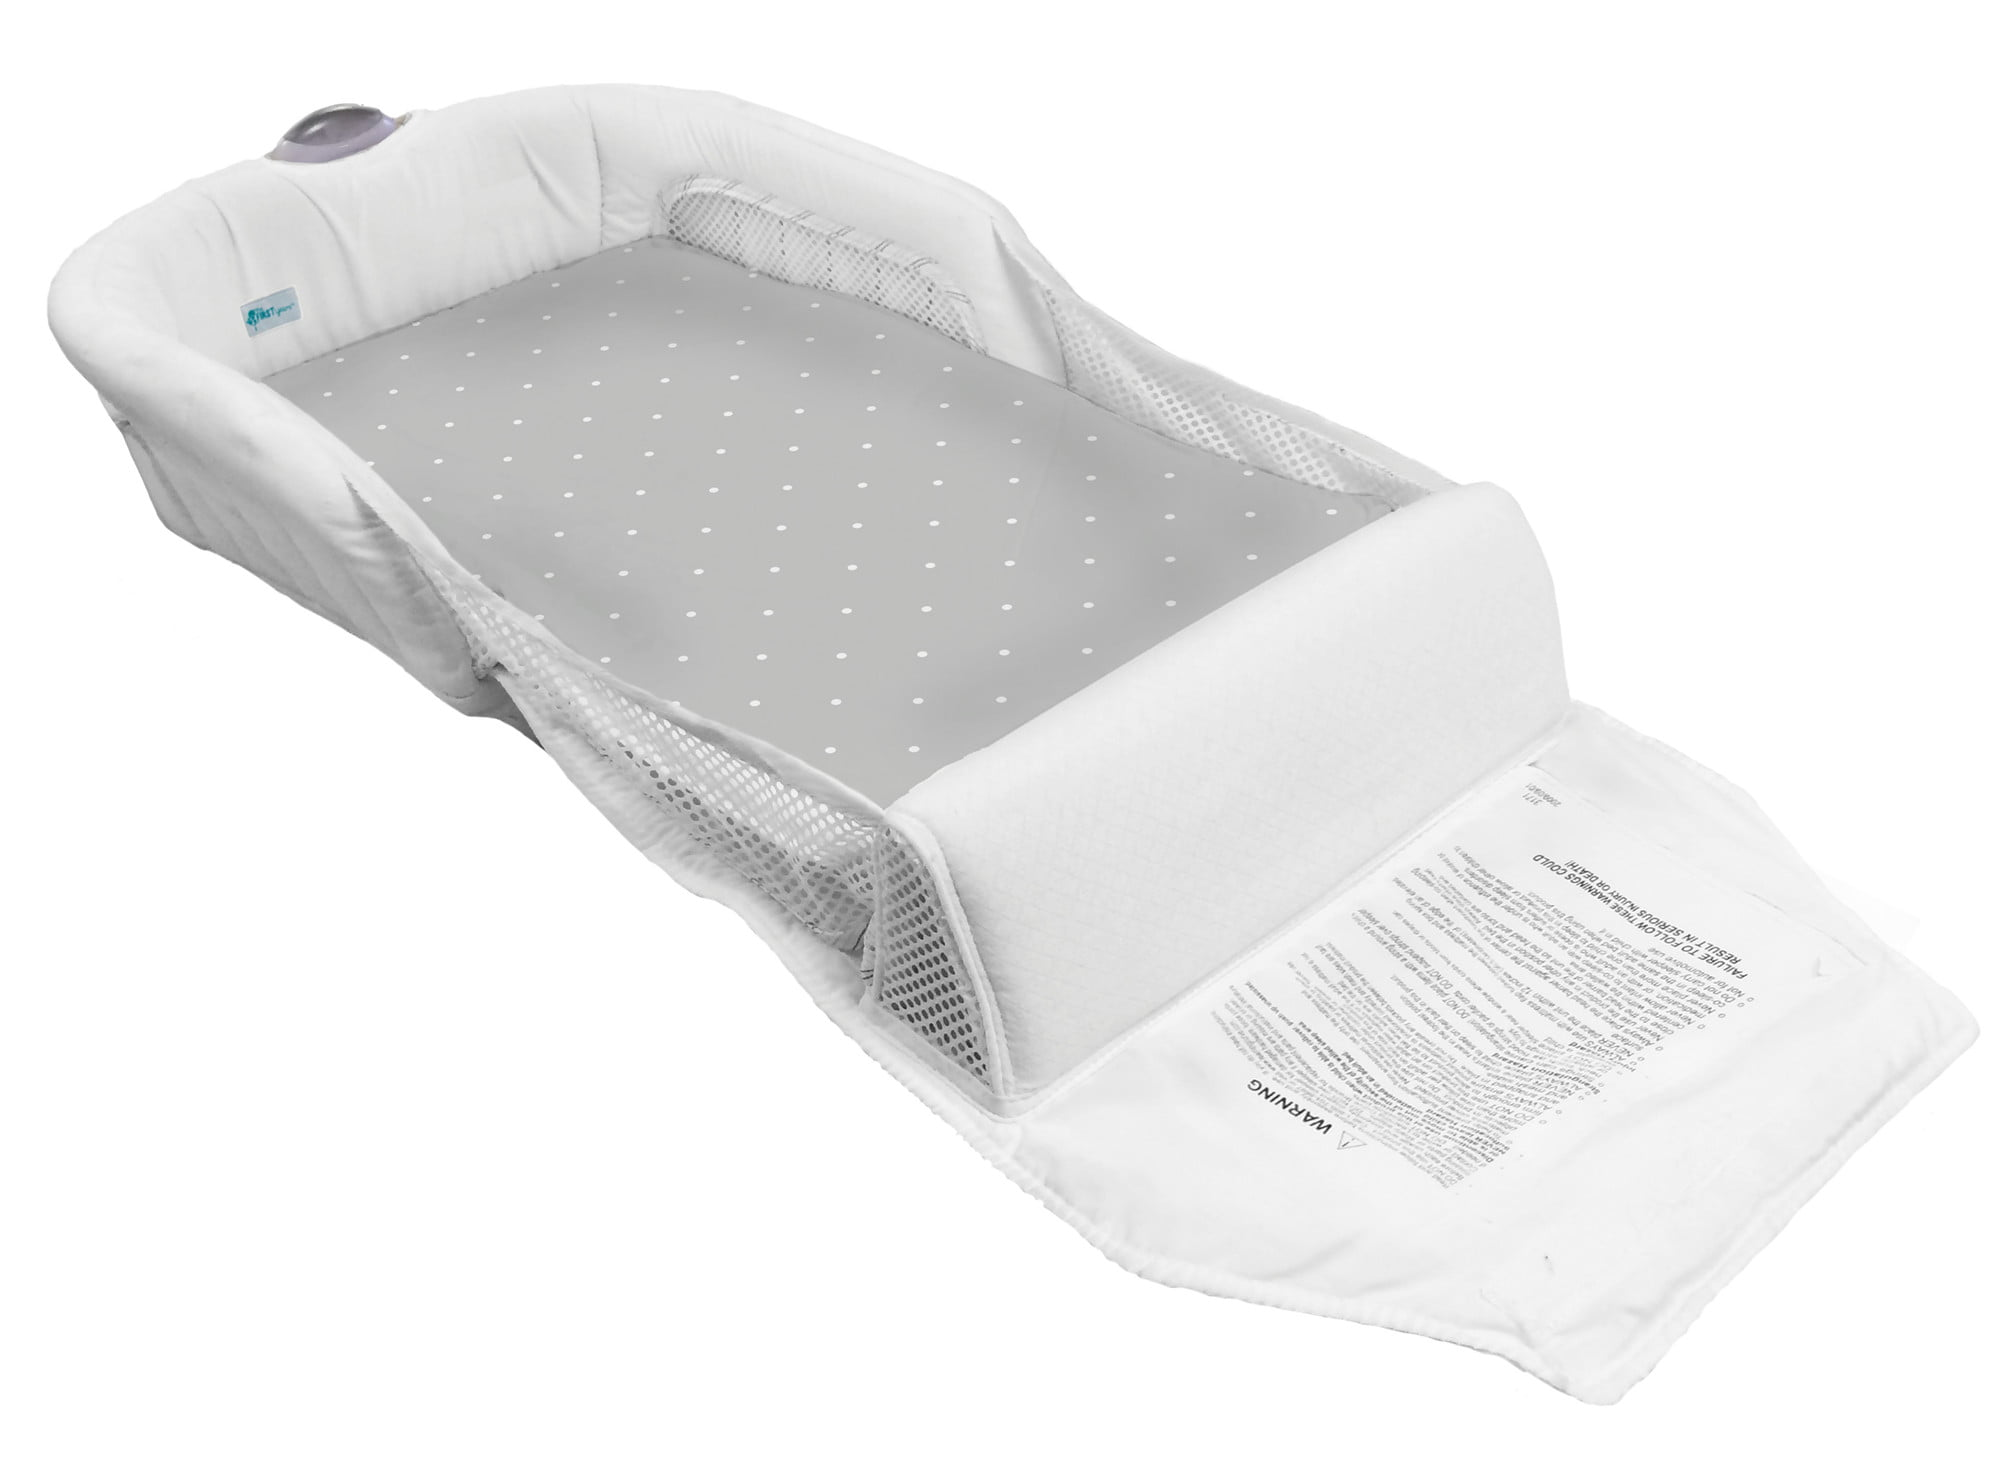 The First Years Cozy Baby Sleeper Portable And Washable Infant Bed Walmart Com Walmart Com